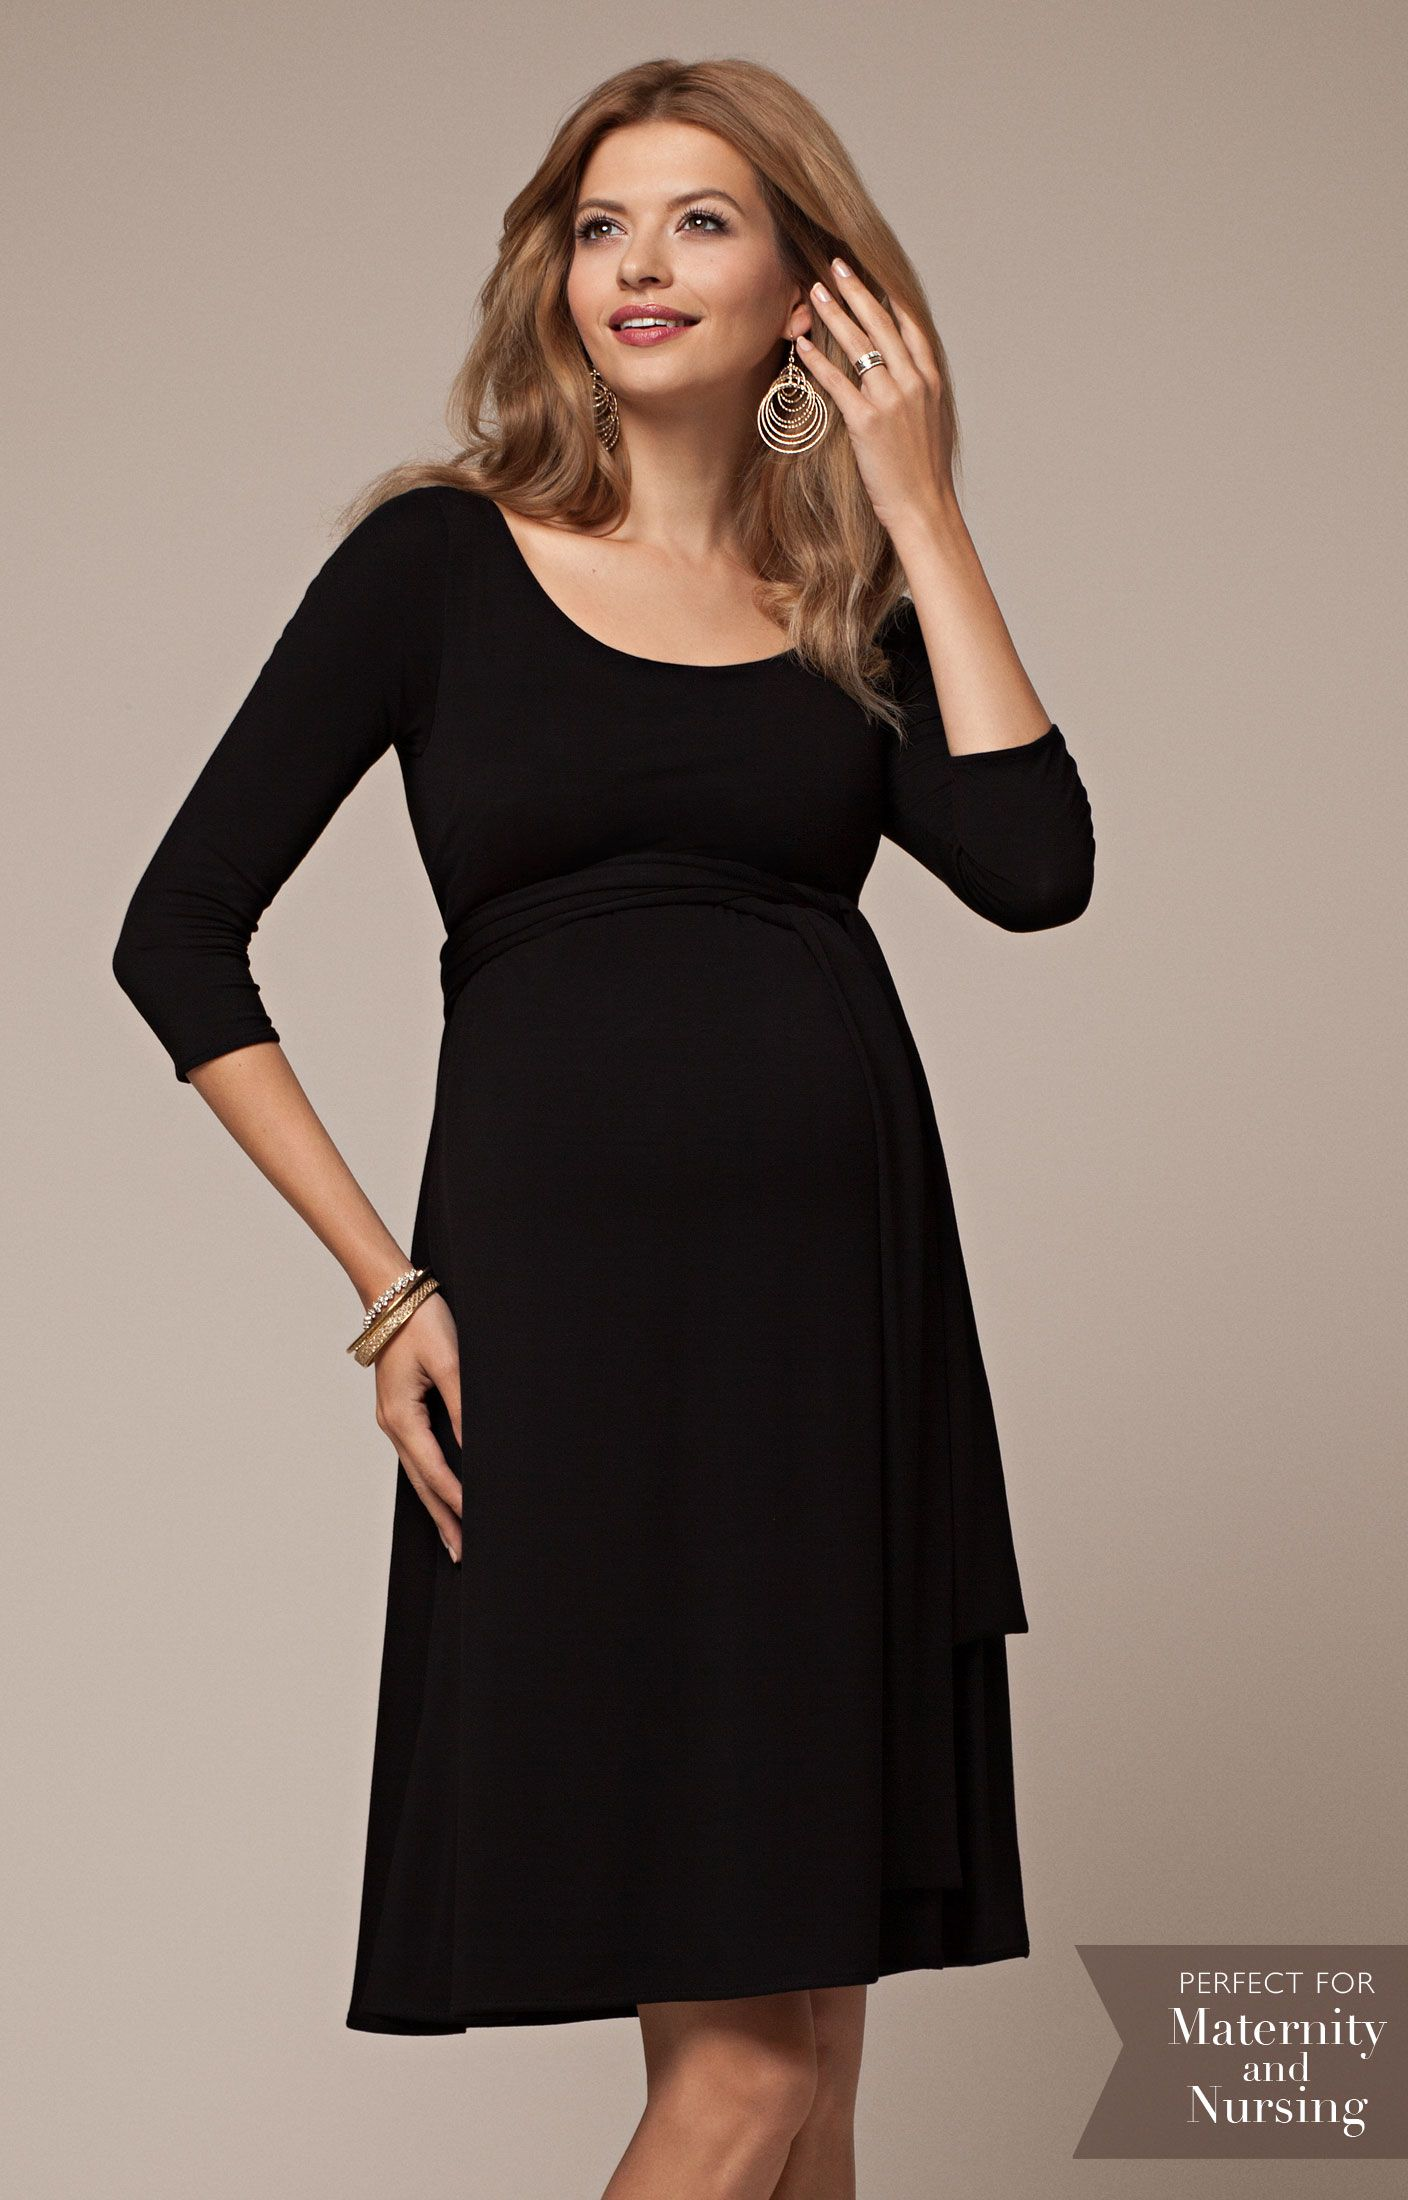 a9e756985aa9d Feeding can be both chic and convenient with our Naomi Nursing Dress in  classic Black.